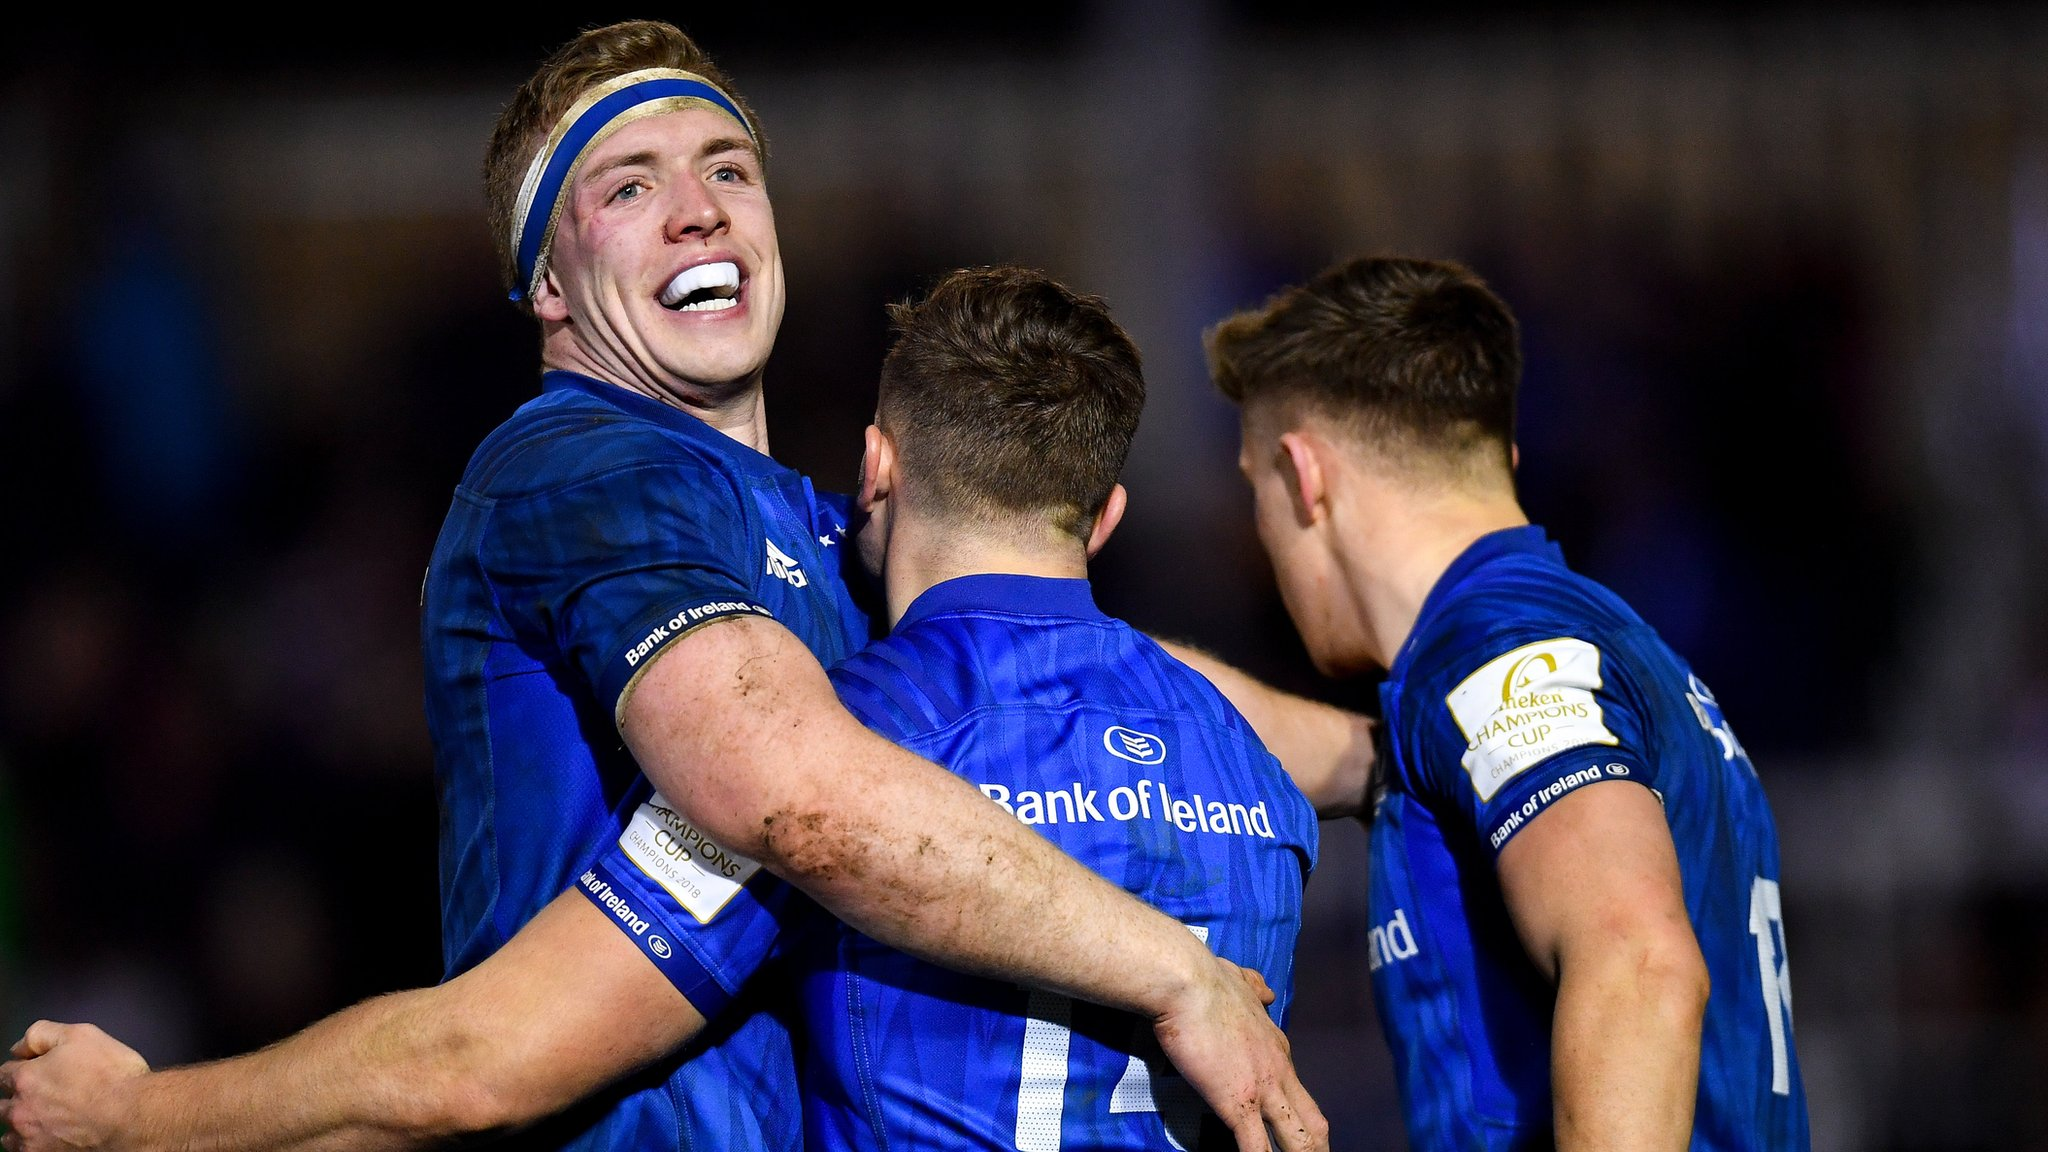 Larmour's interception try helps Leinster beat Bath